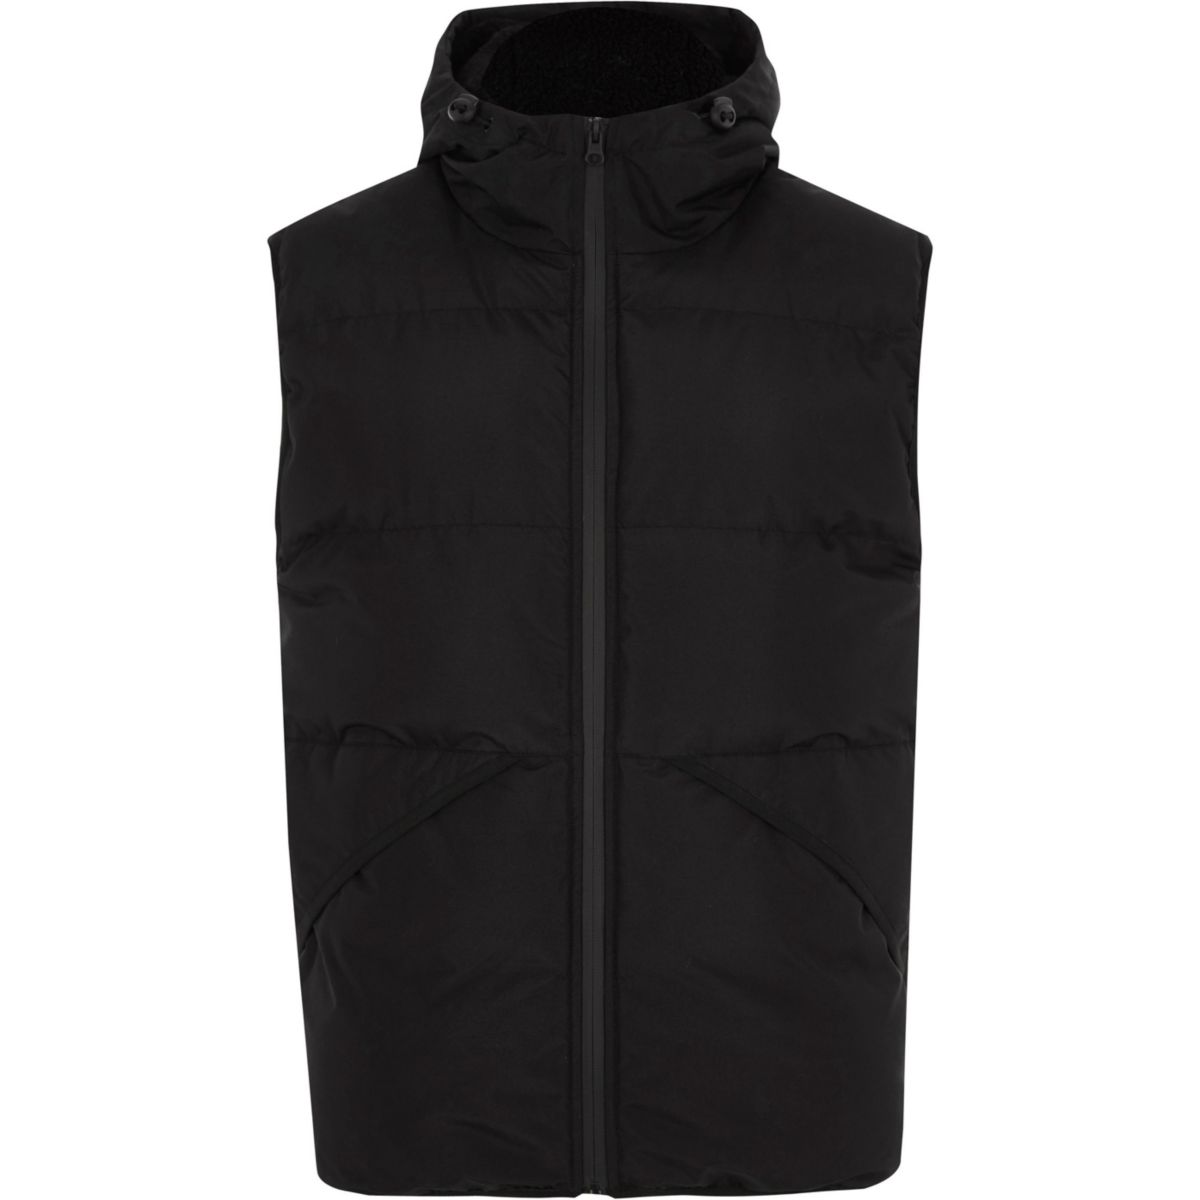 Big and Tall black hooded puffer gilet